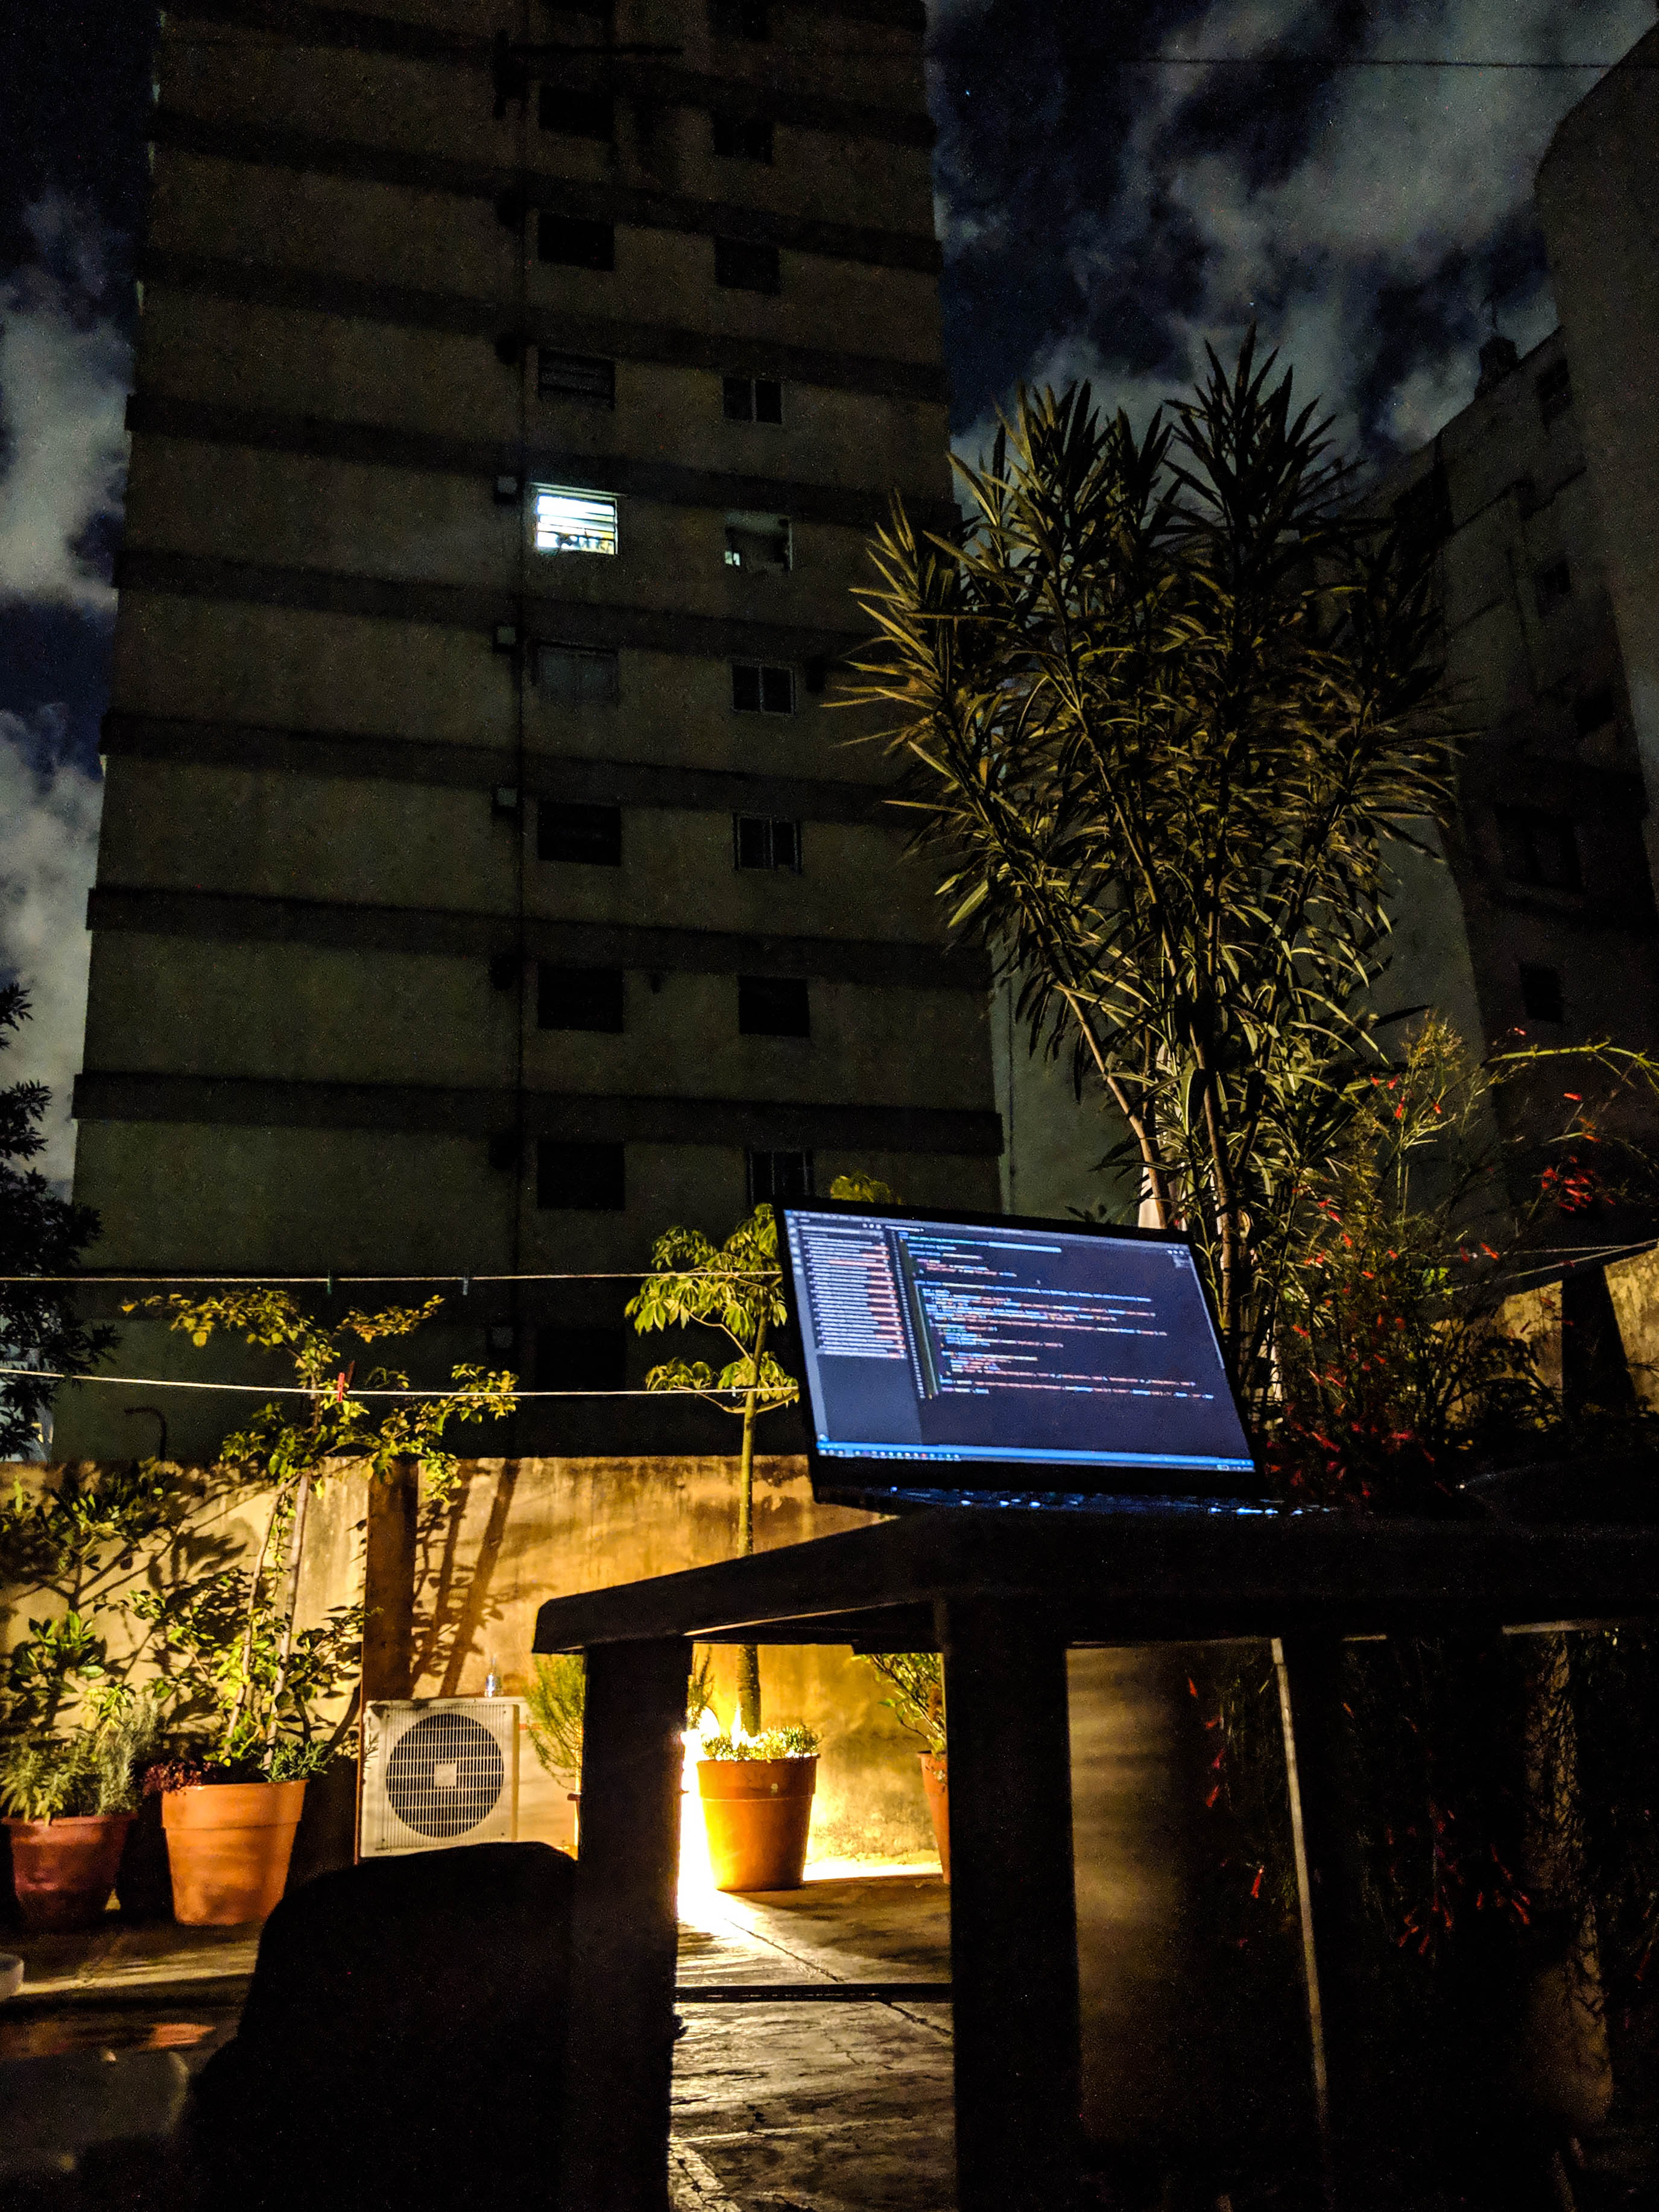 remote work buenos aires